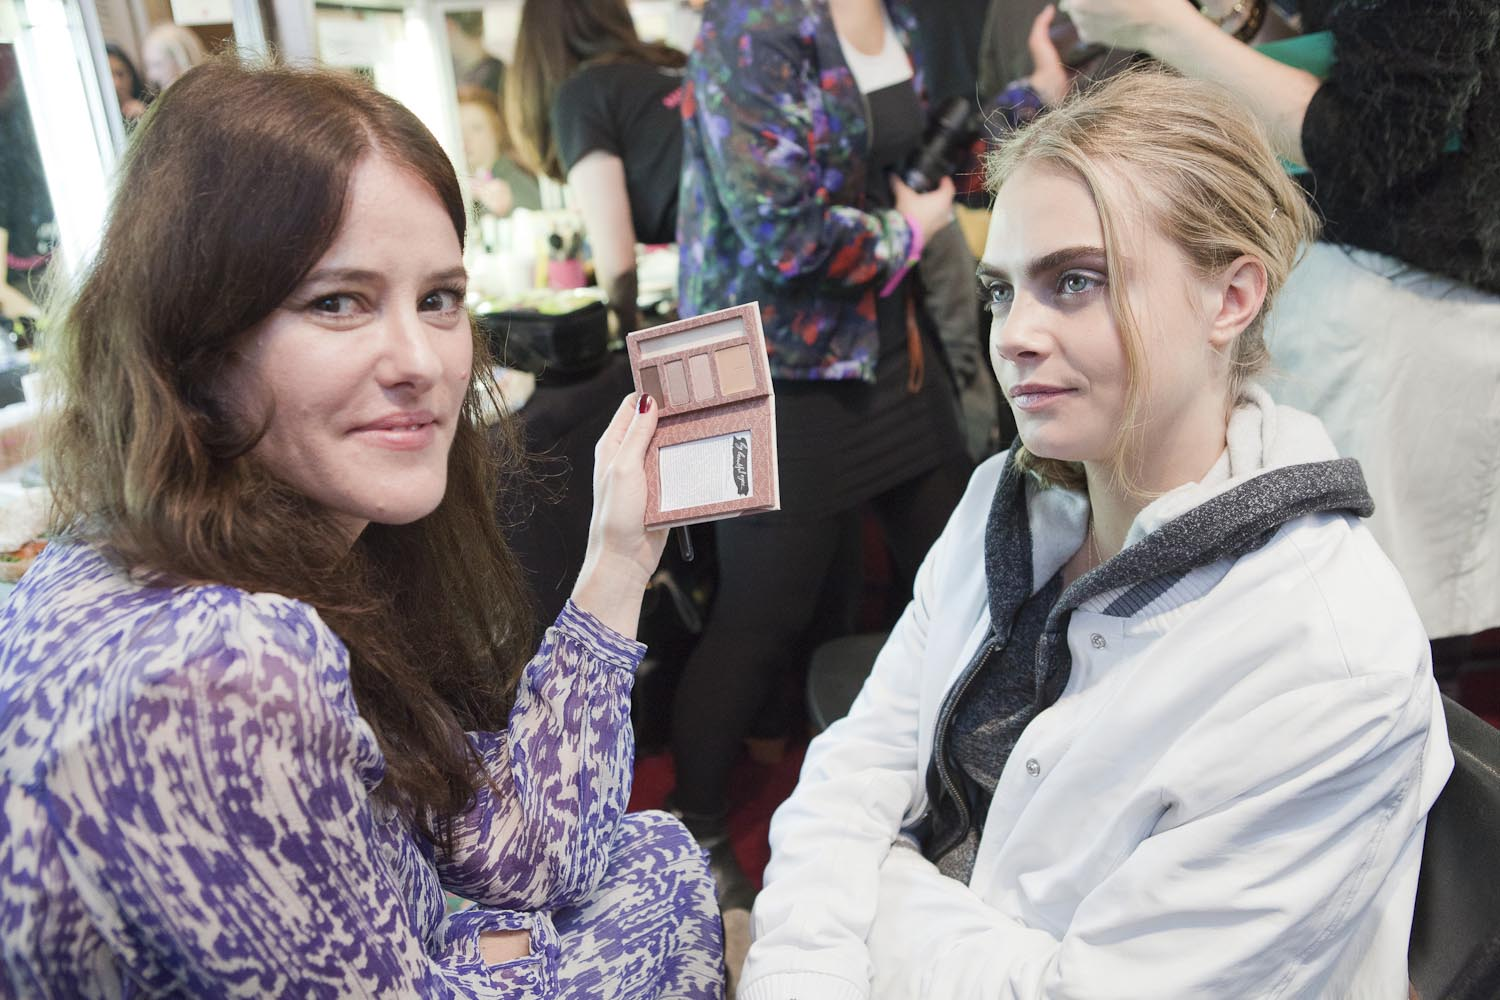 Lisa Eldridge, working back stage at Fashion Week